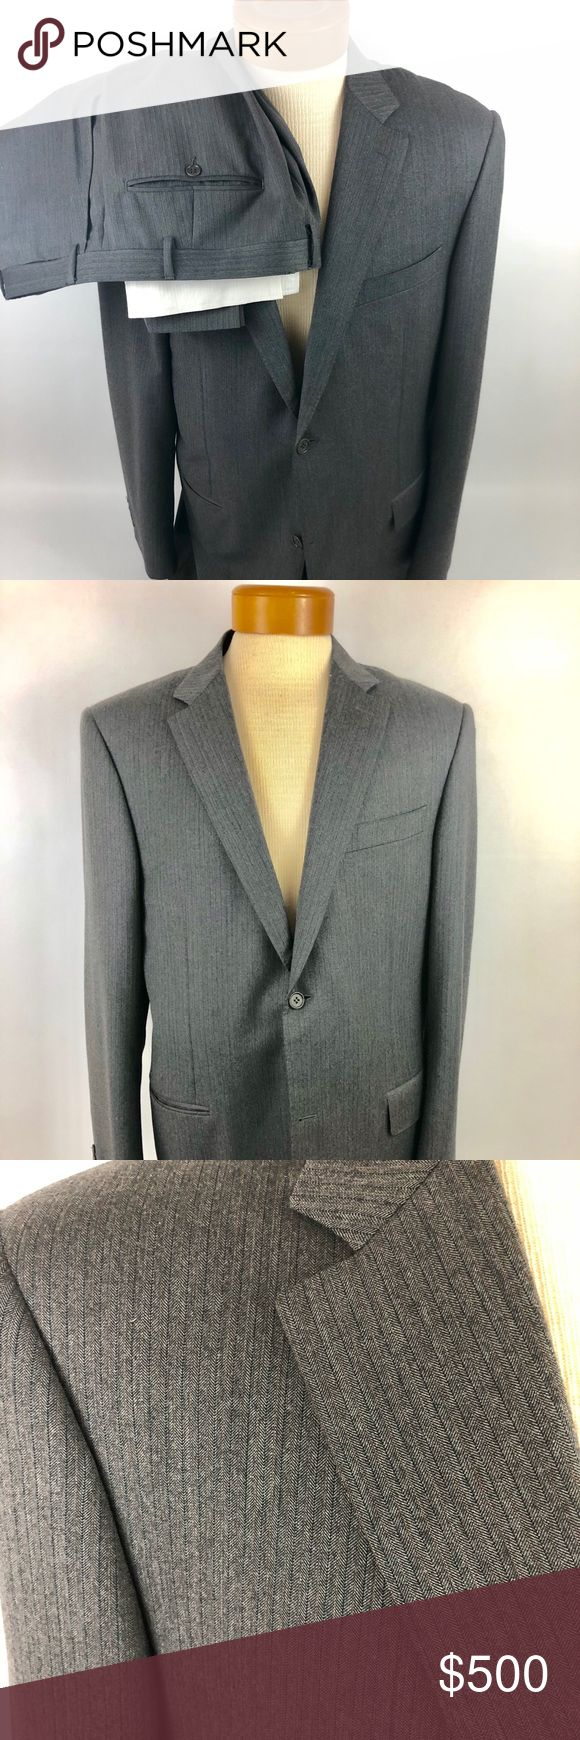 """CANALI  Mens Brown Suit 46R Pants 36x31 MSRP $1795 CANALI NWOT Mens Brown Suit 46R Pants 36x31 MSRP $1795  Condition:  This suit has never been worn but the tags have been removed.  The tags are included.   Measurements:  Armpit to Armpit:23 Chest:46 Waist:22 Arm:26 Shoulder to Shoulder:18.5 Length from bottom of collar:32  Pants:  Waist: 36 ( with .33 allowance) Inseam: 31 (1.75"""" allowance) Outseam: 41.5 Leg Opening:9.5 Front Rise:10.5 Back Rise: 14.5 Hips: 40 Canali Suits & Blazers Suits"""